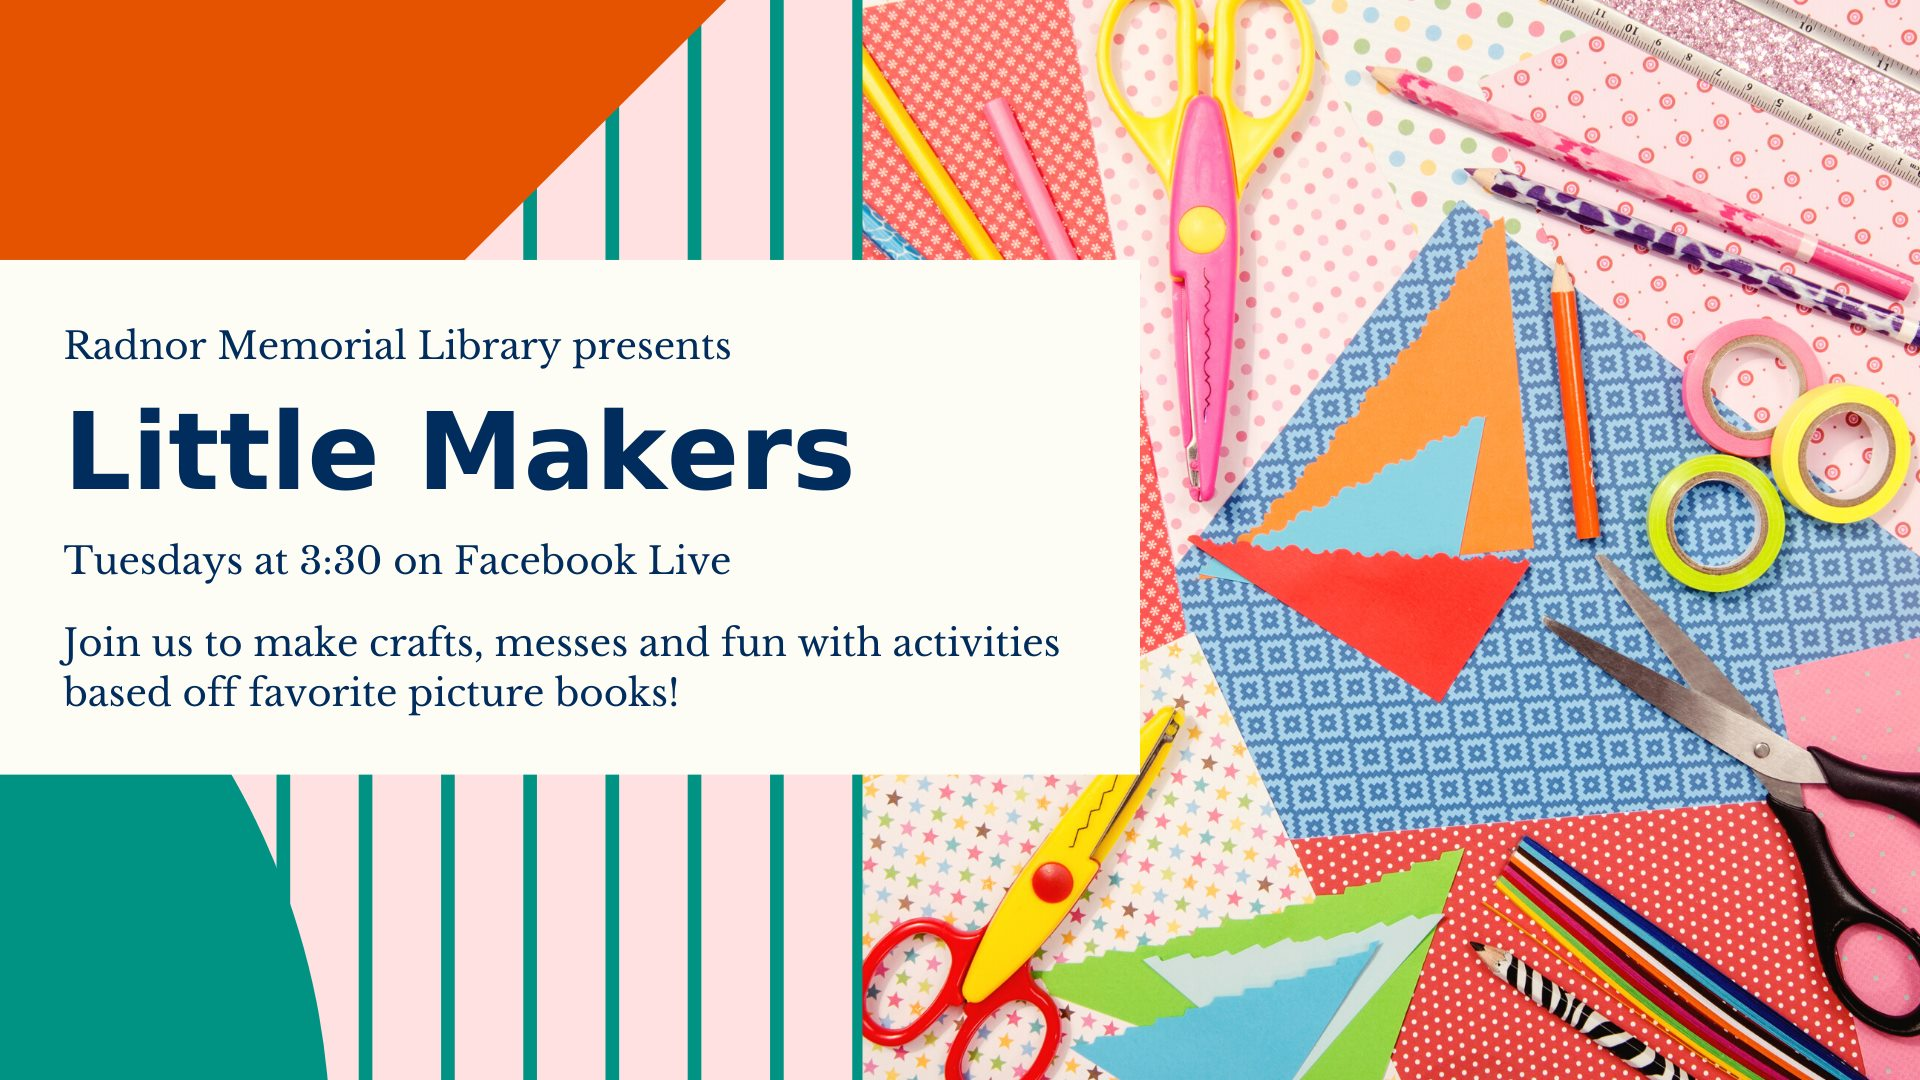 Little Makers on FB Live